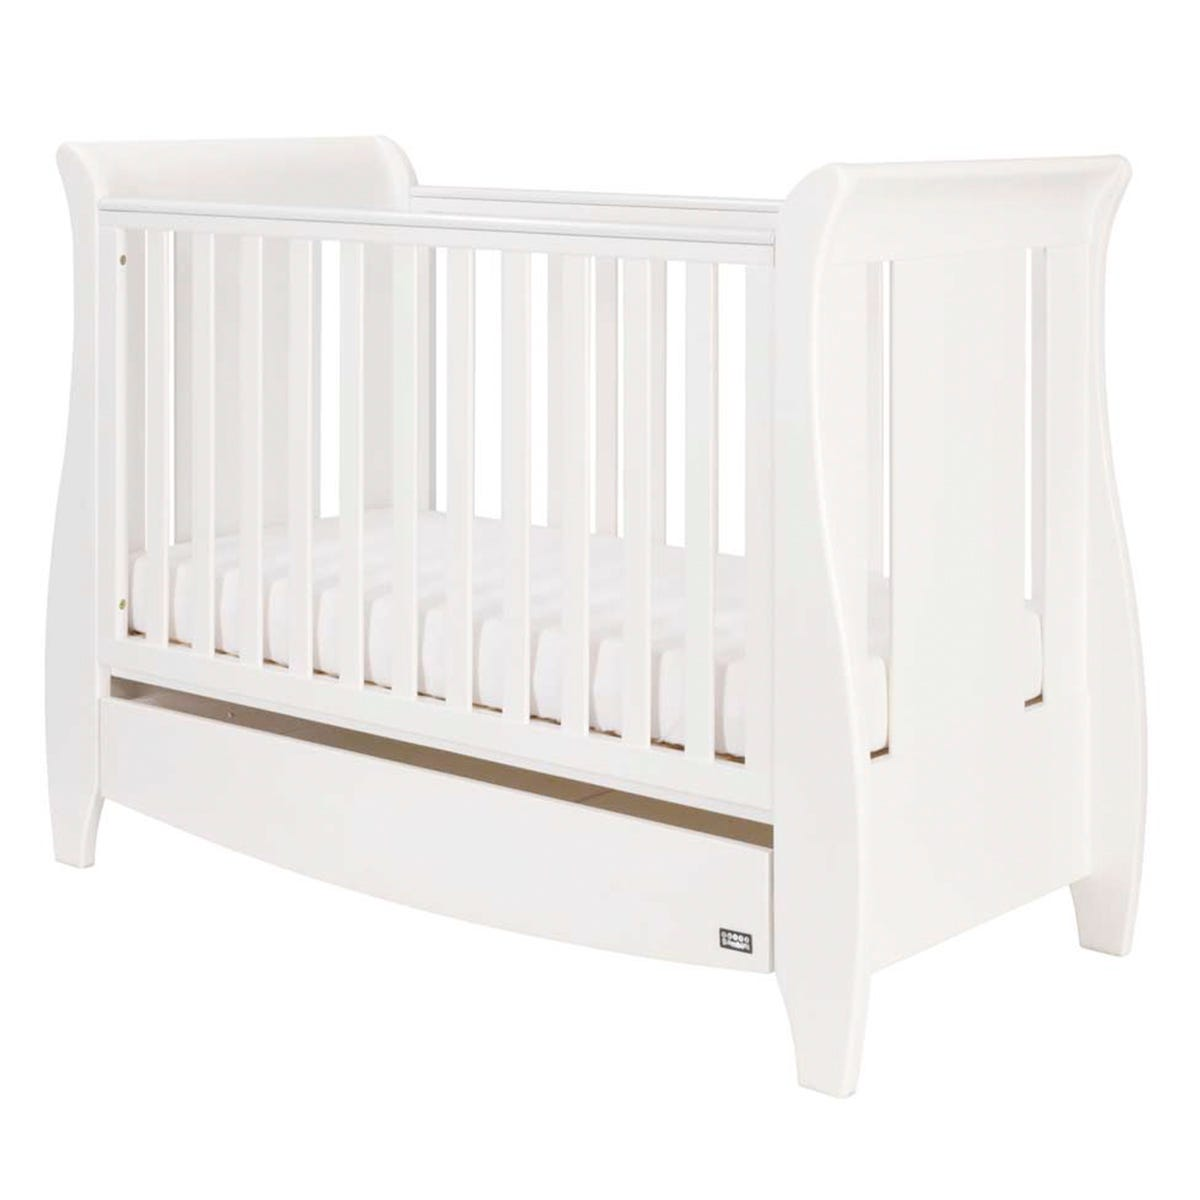 Tutti Bambini Katie Mini Sleigh Cot Bed with Drawer - White